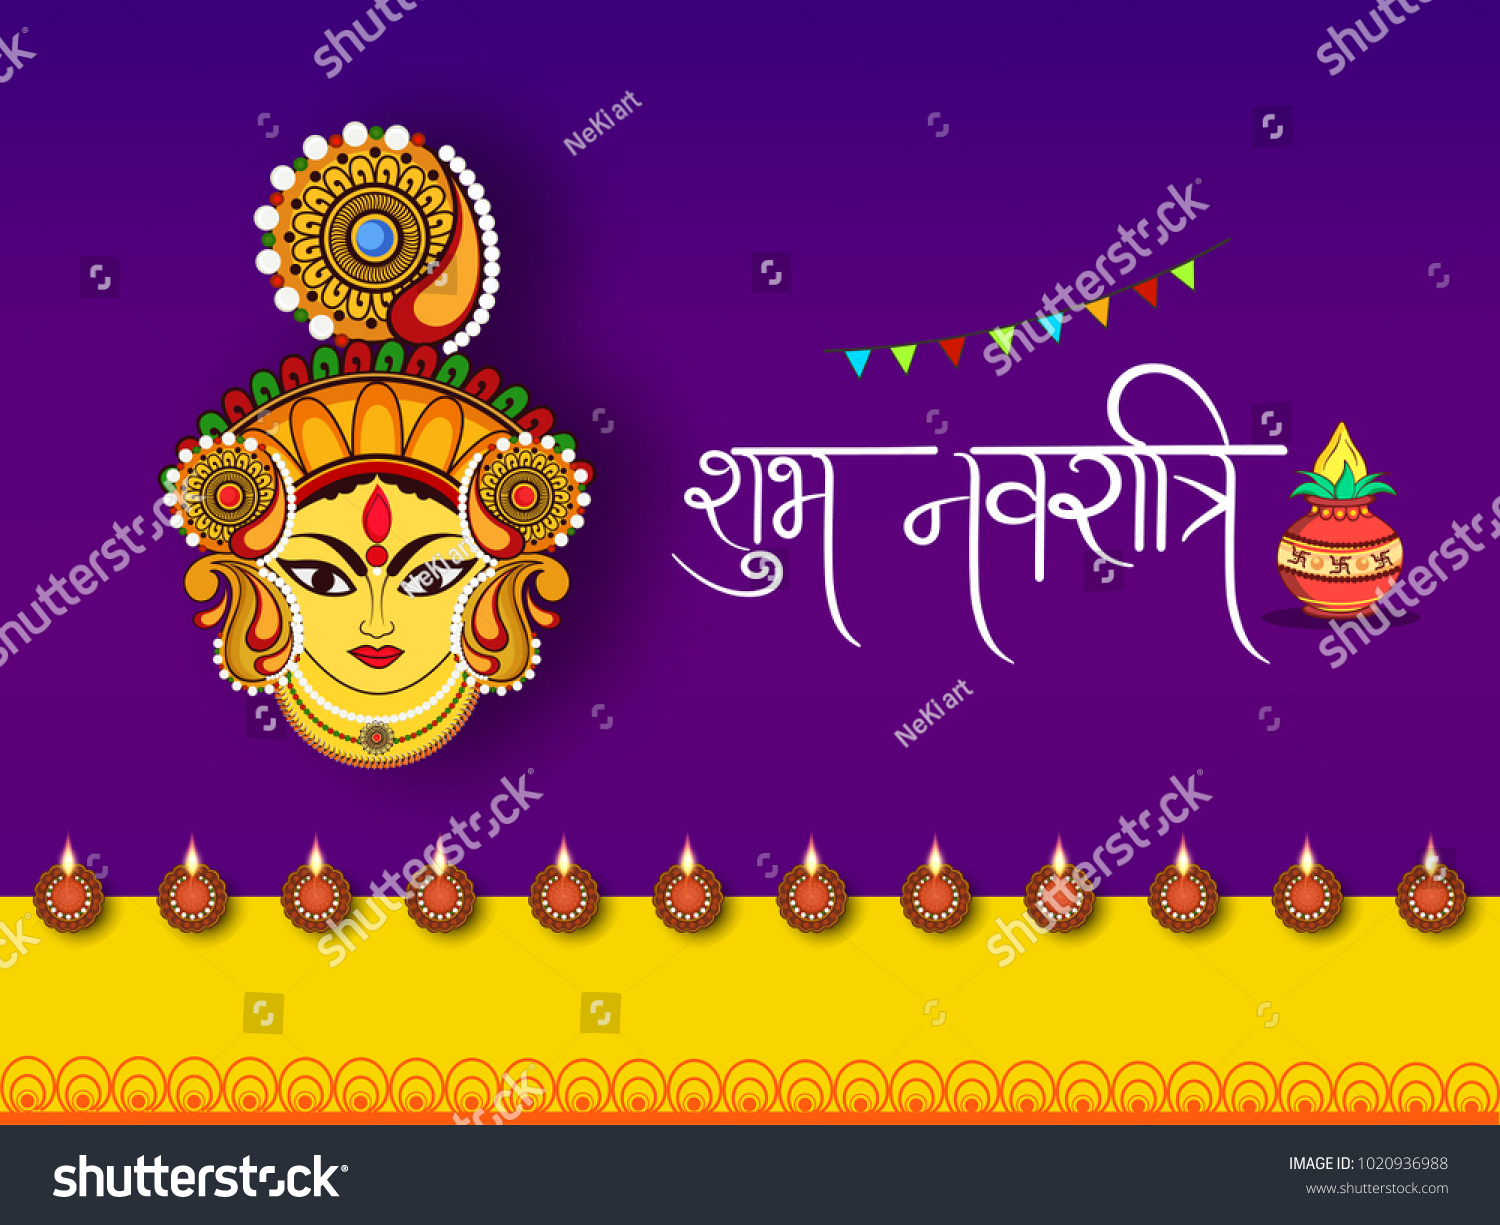 Abstract editable vector for hindu festival chaitra navratri 2018 id 1020936988 m4hsunfo